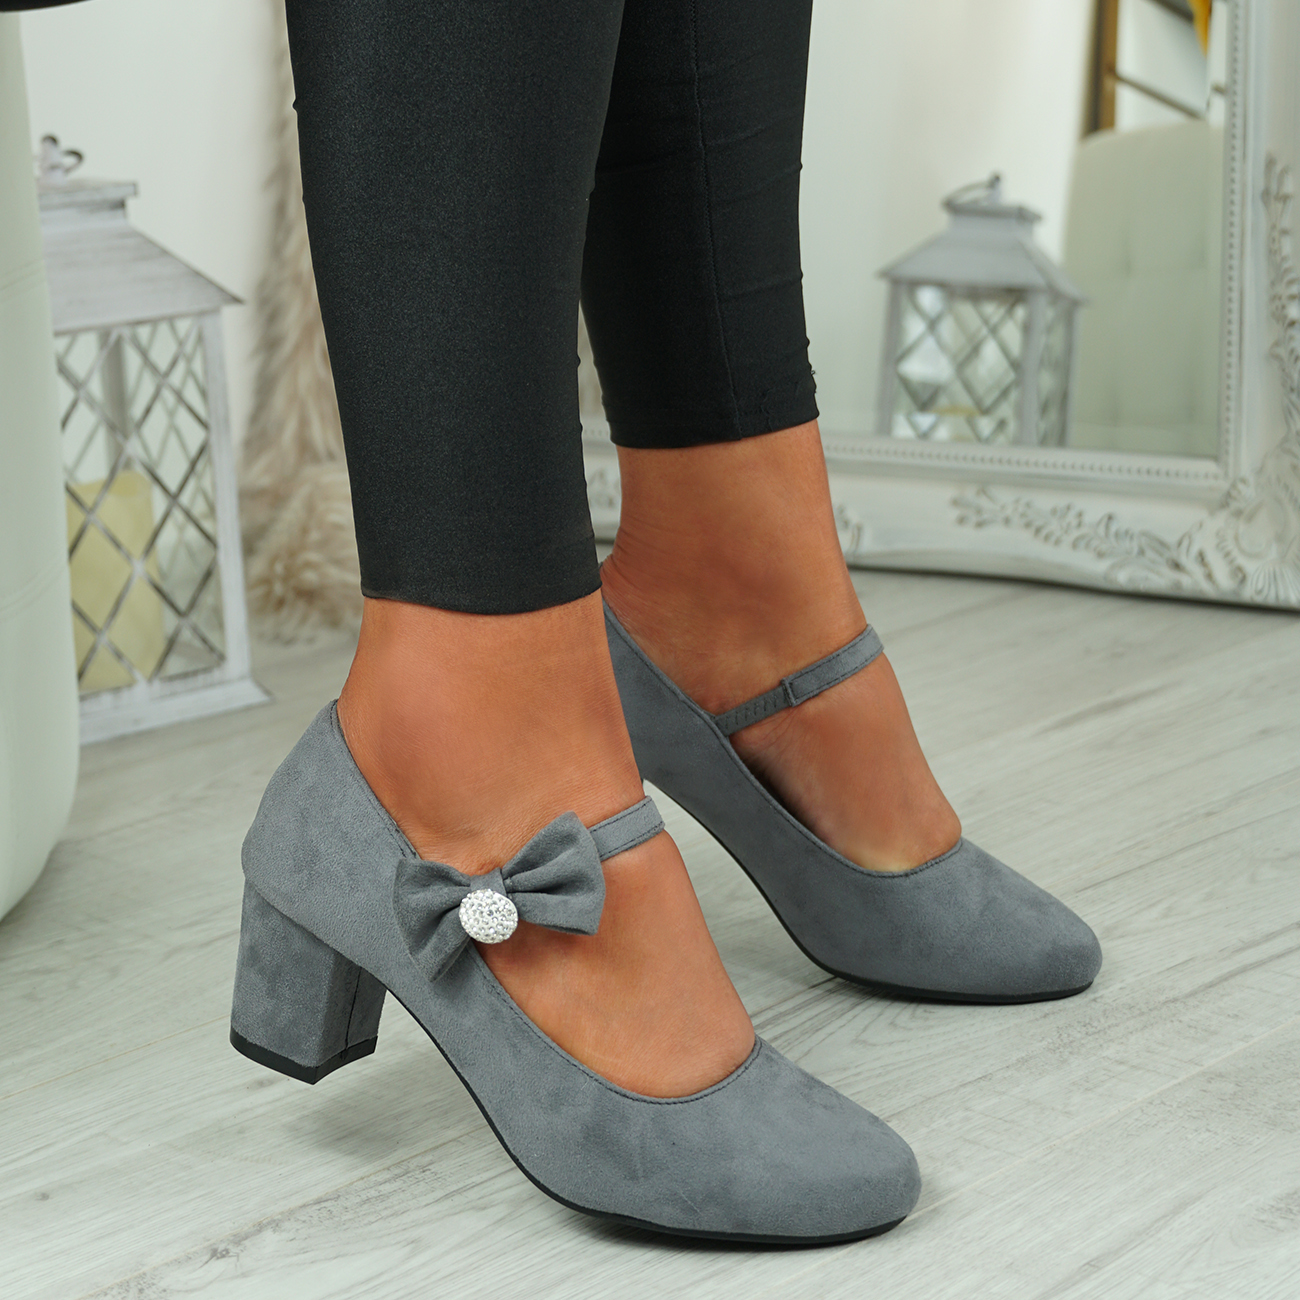 NEW-WOMENS-BLOCK-HEEL-PUMPS-BOW-BUCKLE-STRAP-ROUNDED-TOE-CASUAL-SHOES-SIZE thumbnail 19